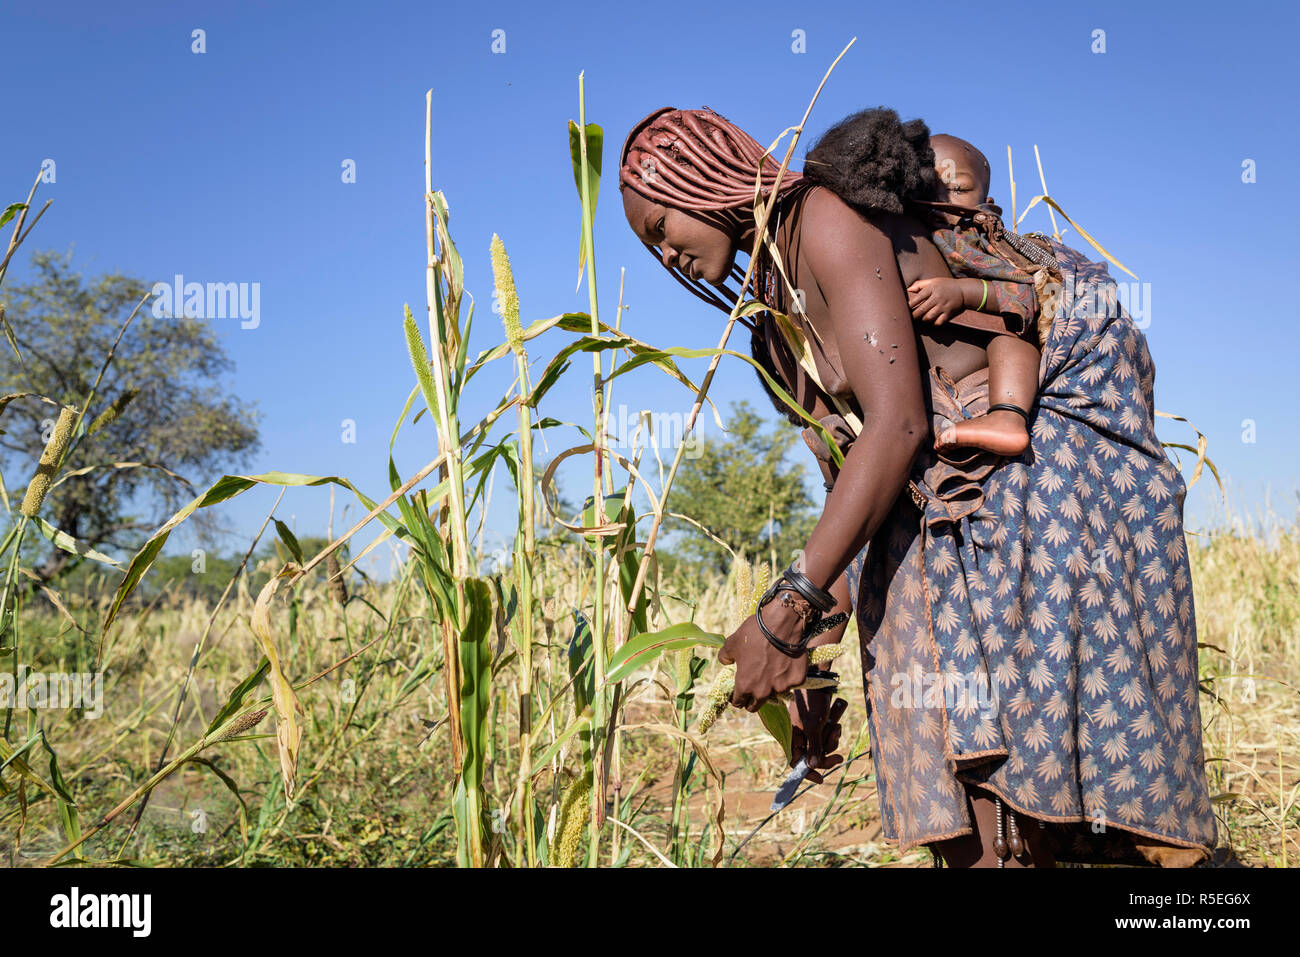 Himba woman harvesting millet with her child on her back. - Stock Image